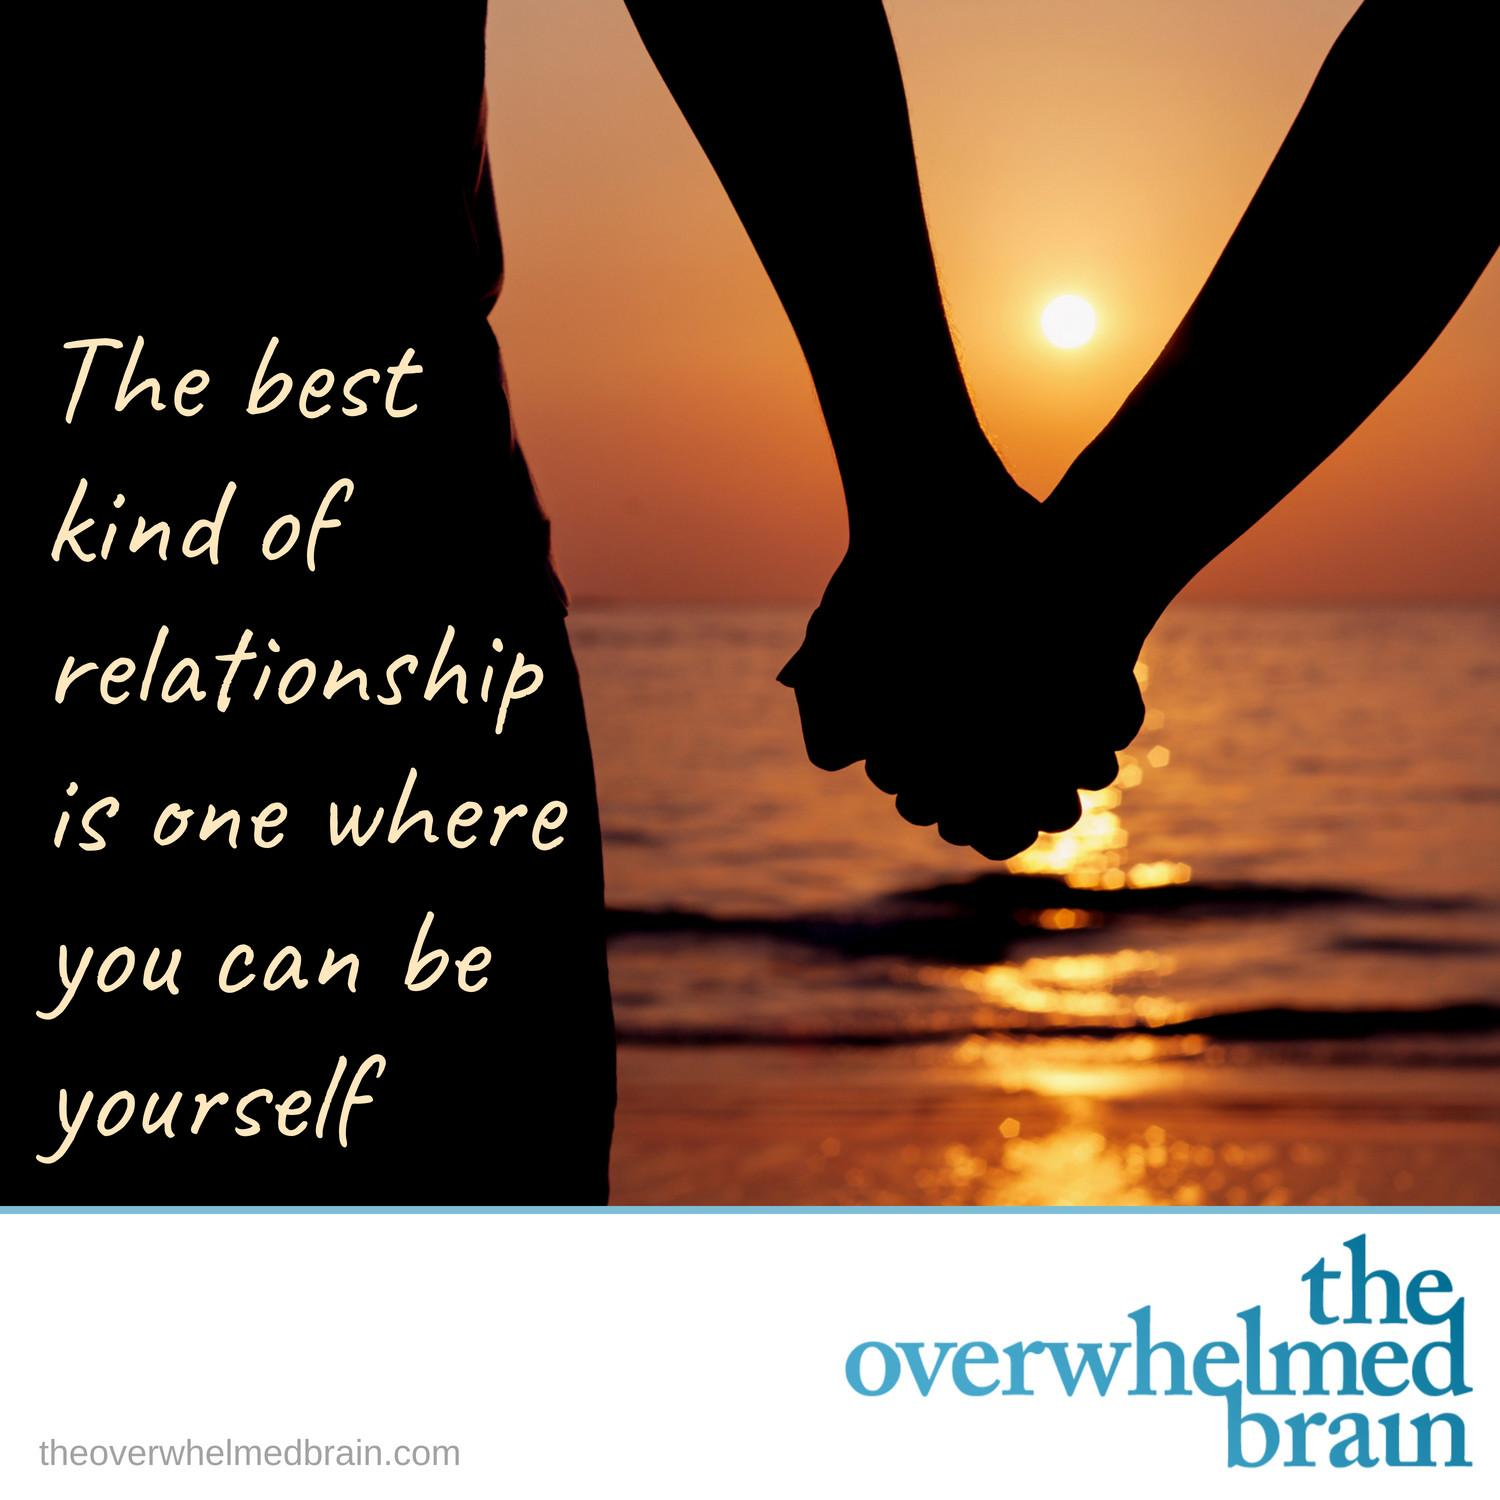 The best kind of relationship is the one where you can be yourself